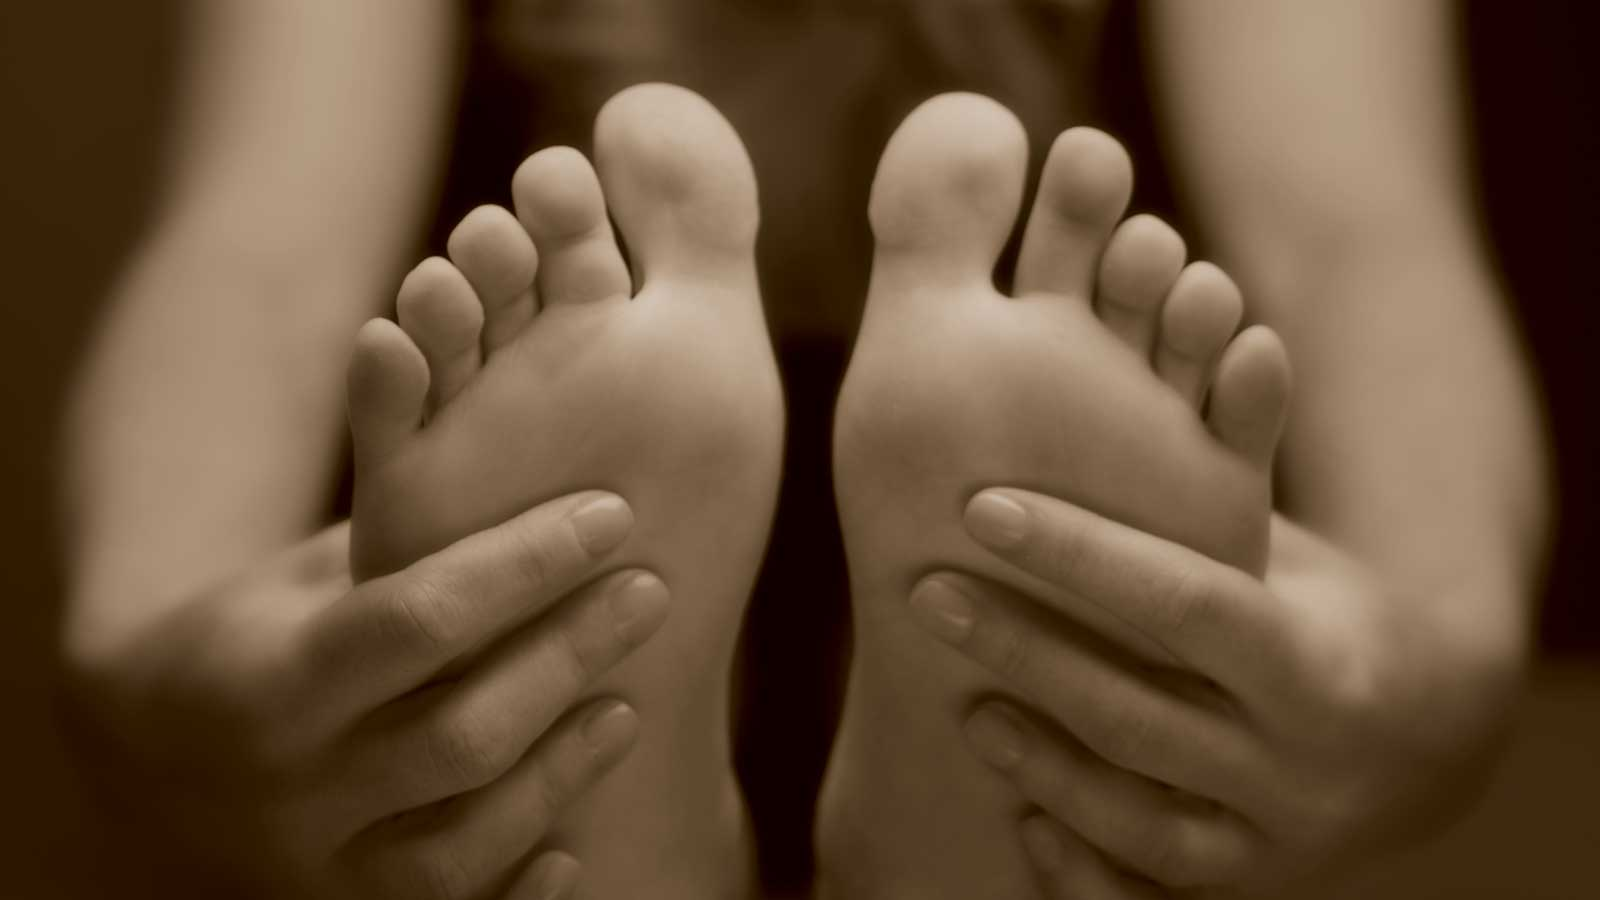 A woman's feet and hands, with manicure and pedicure